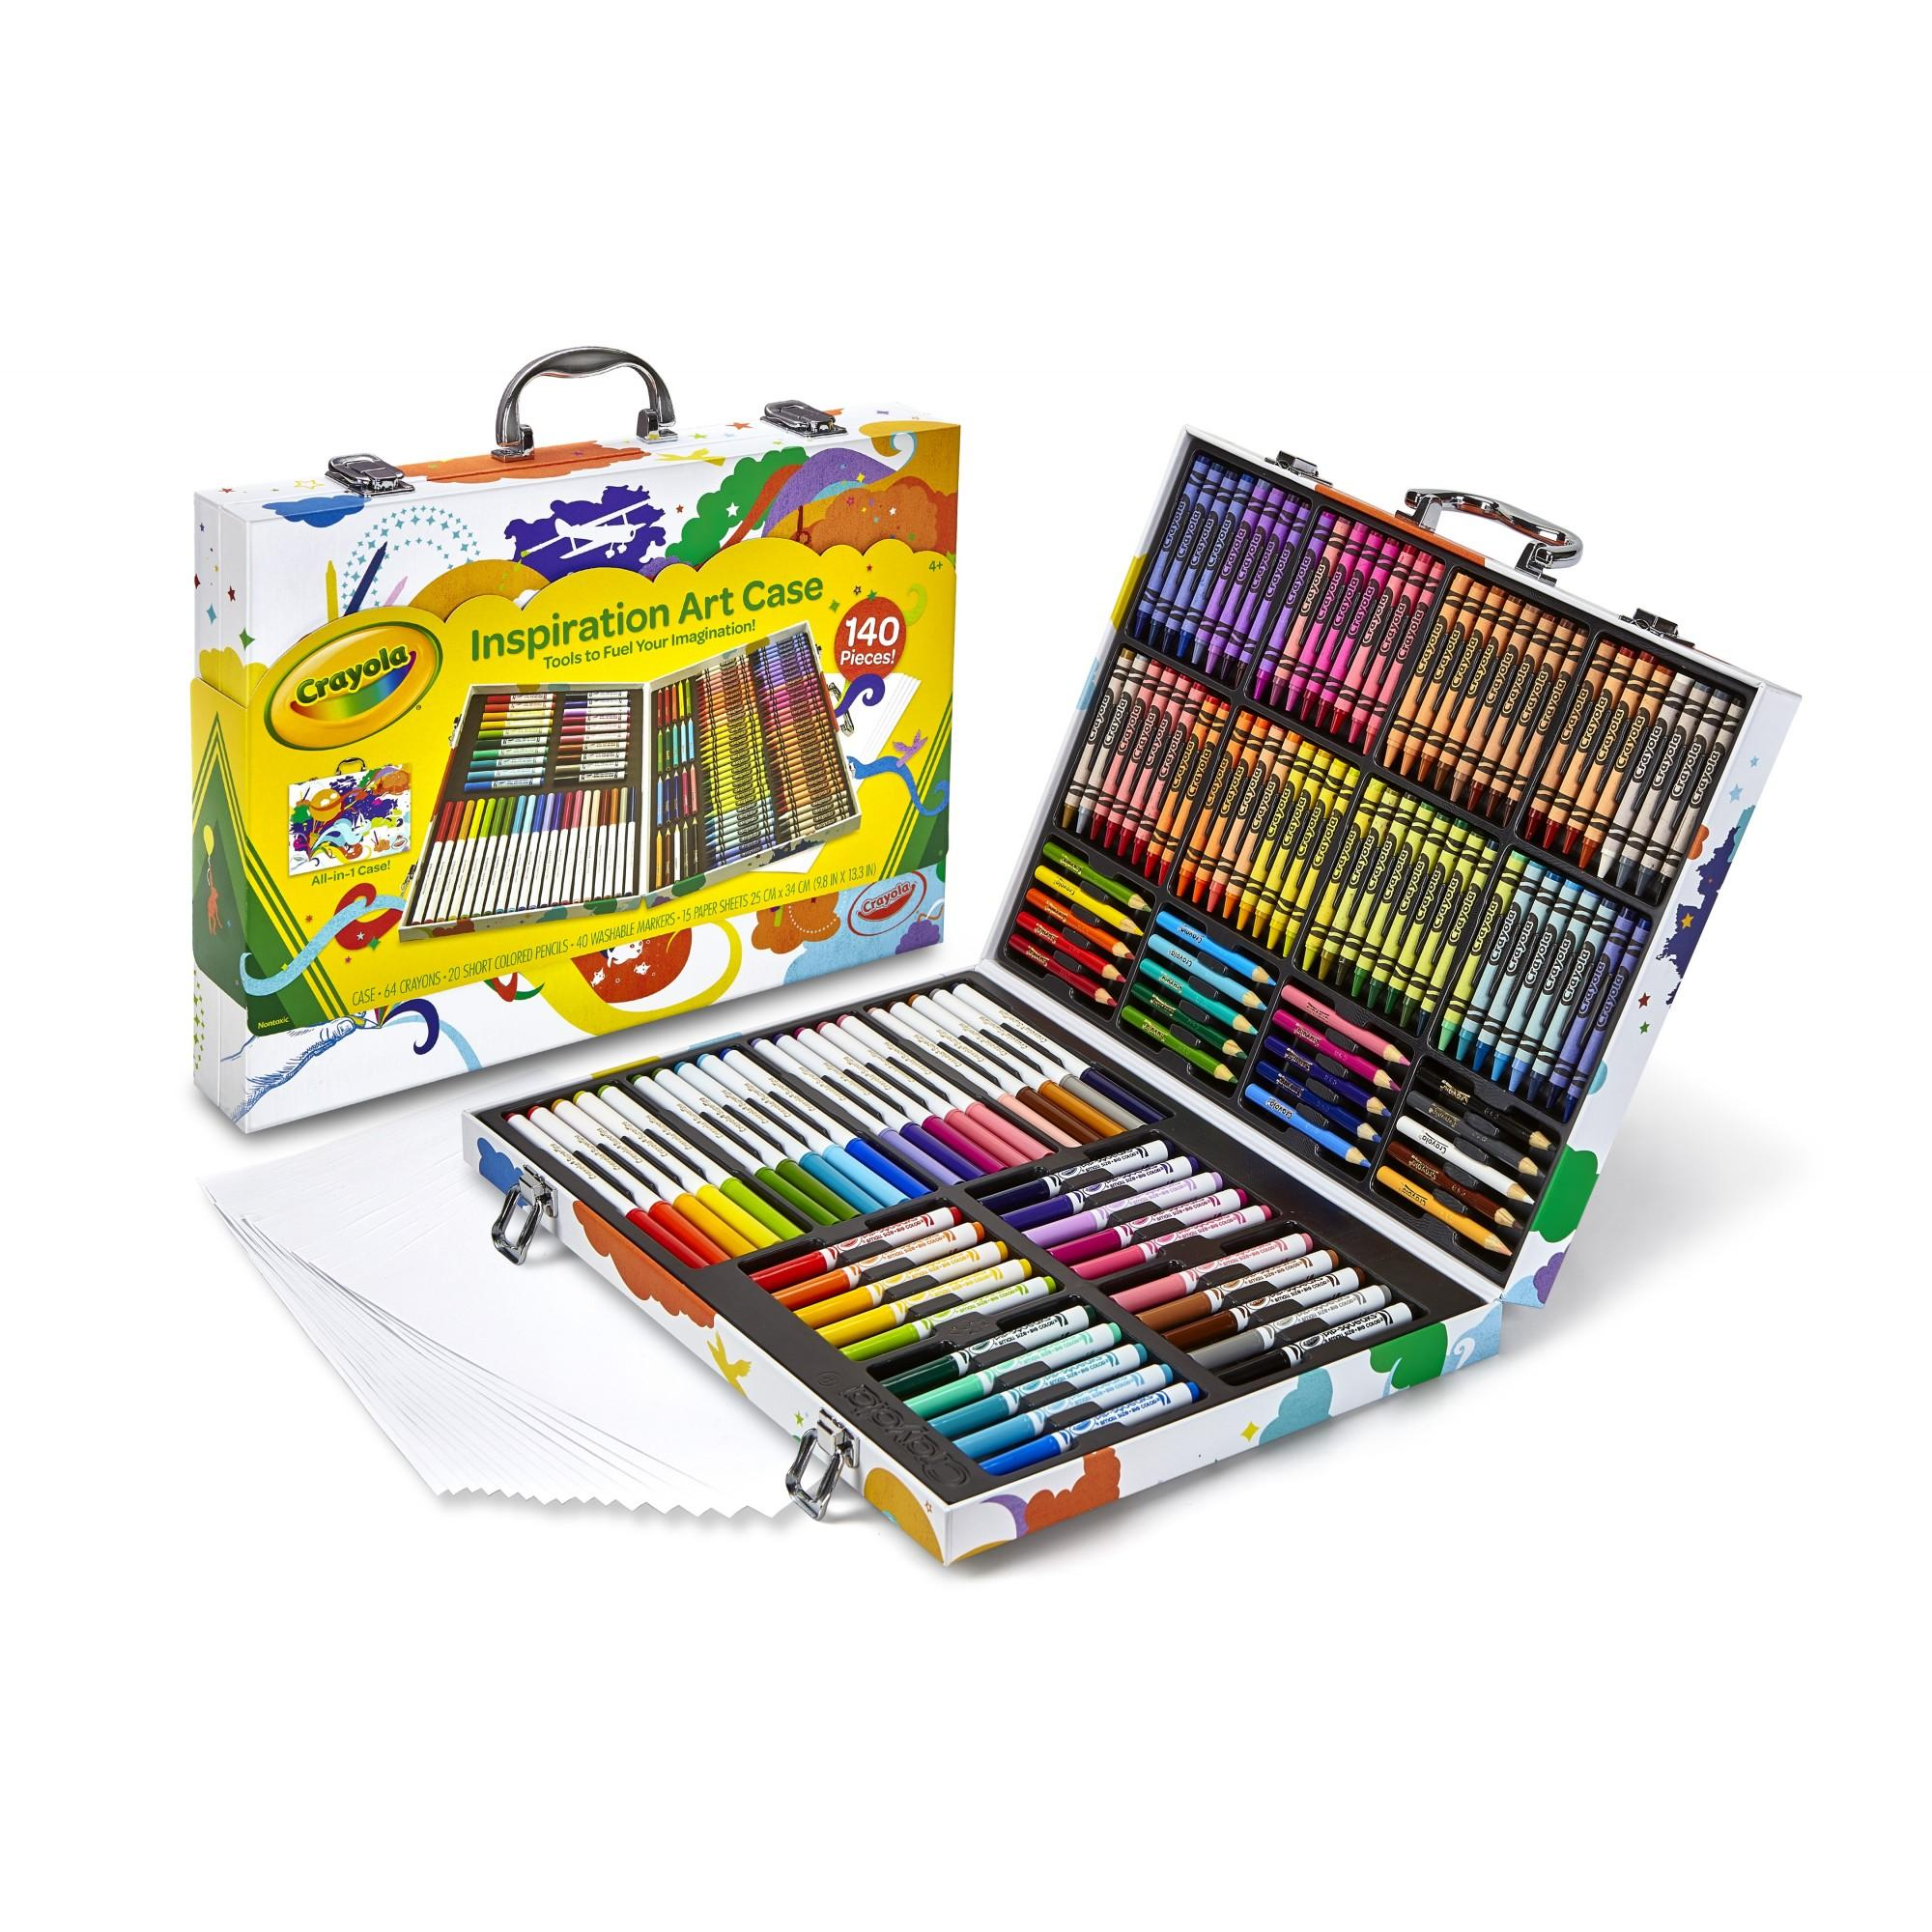 Crayola Inspiration Art Kit, 140 Pieces, Includes Crayons, Colored Pencils, Washable Markers and More